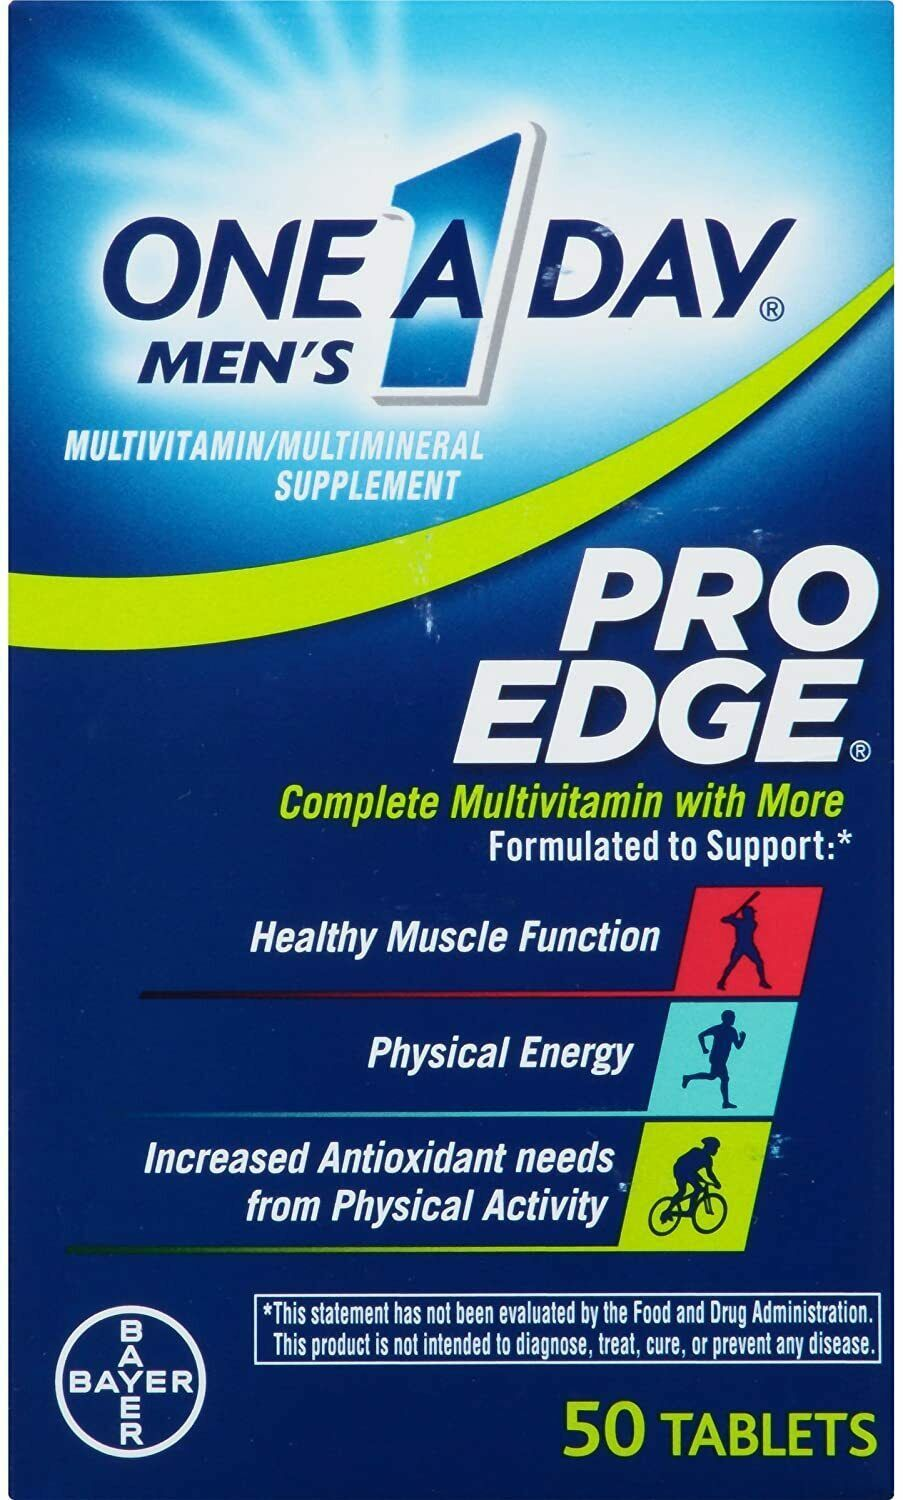 One a Day MEN'S PRO EDGE Multivitamin Tablets 50 Count EXP 05/21 to 12/21 - $6.33